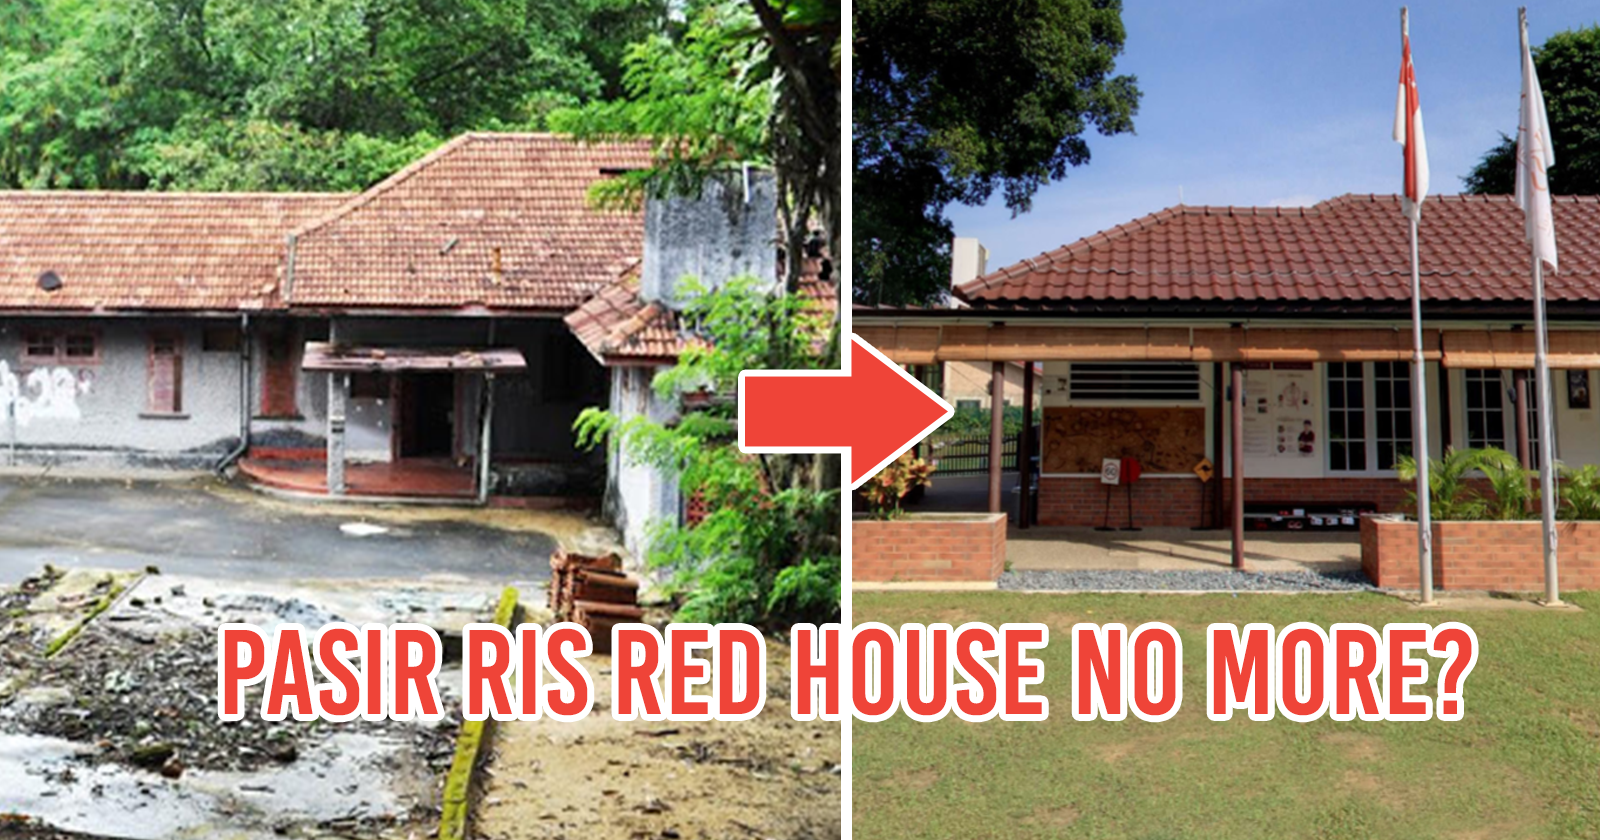 Pasir ris red house once sgs most haunted place is now an atas pasir ris red house once sgs most haunted place is now an atas preschool thecheapjerseys Gallery